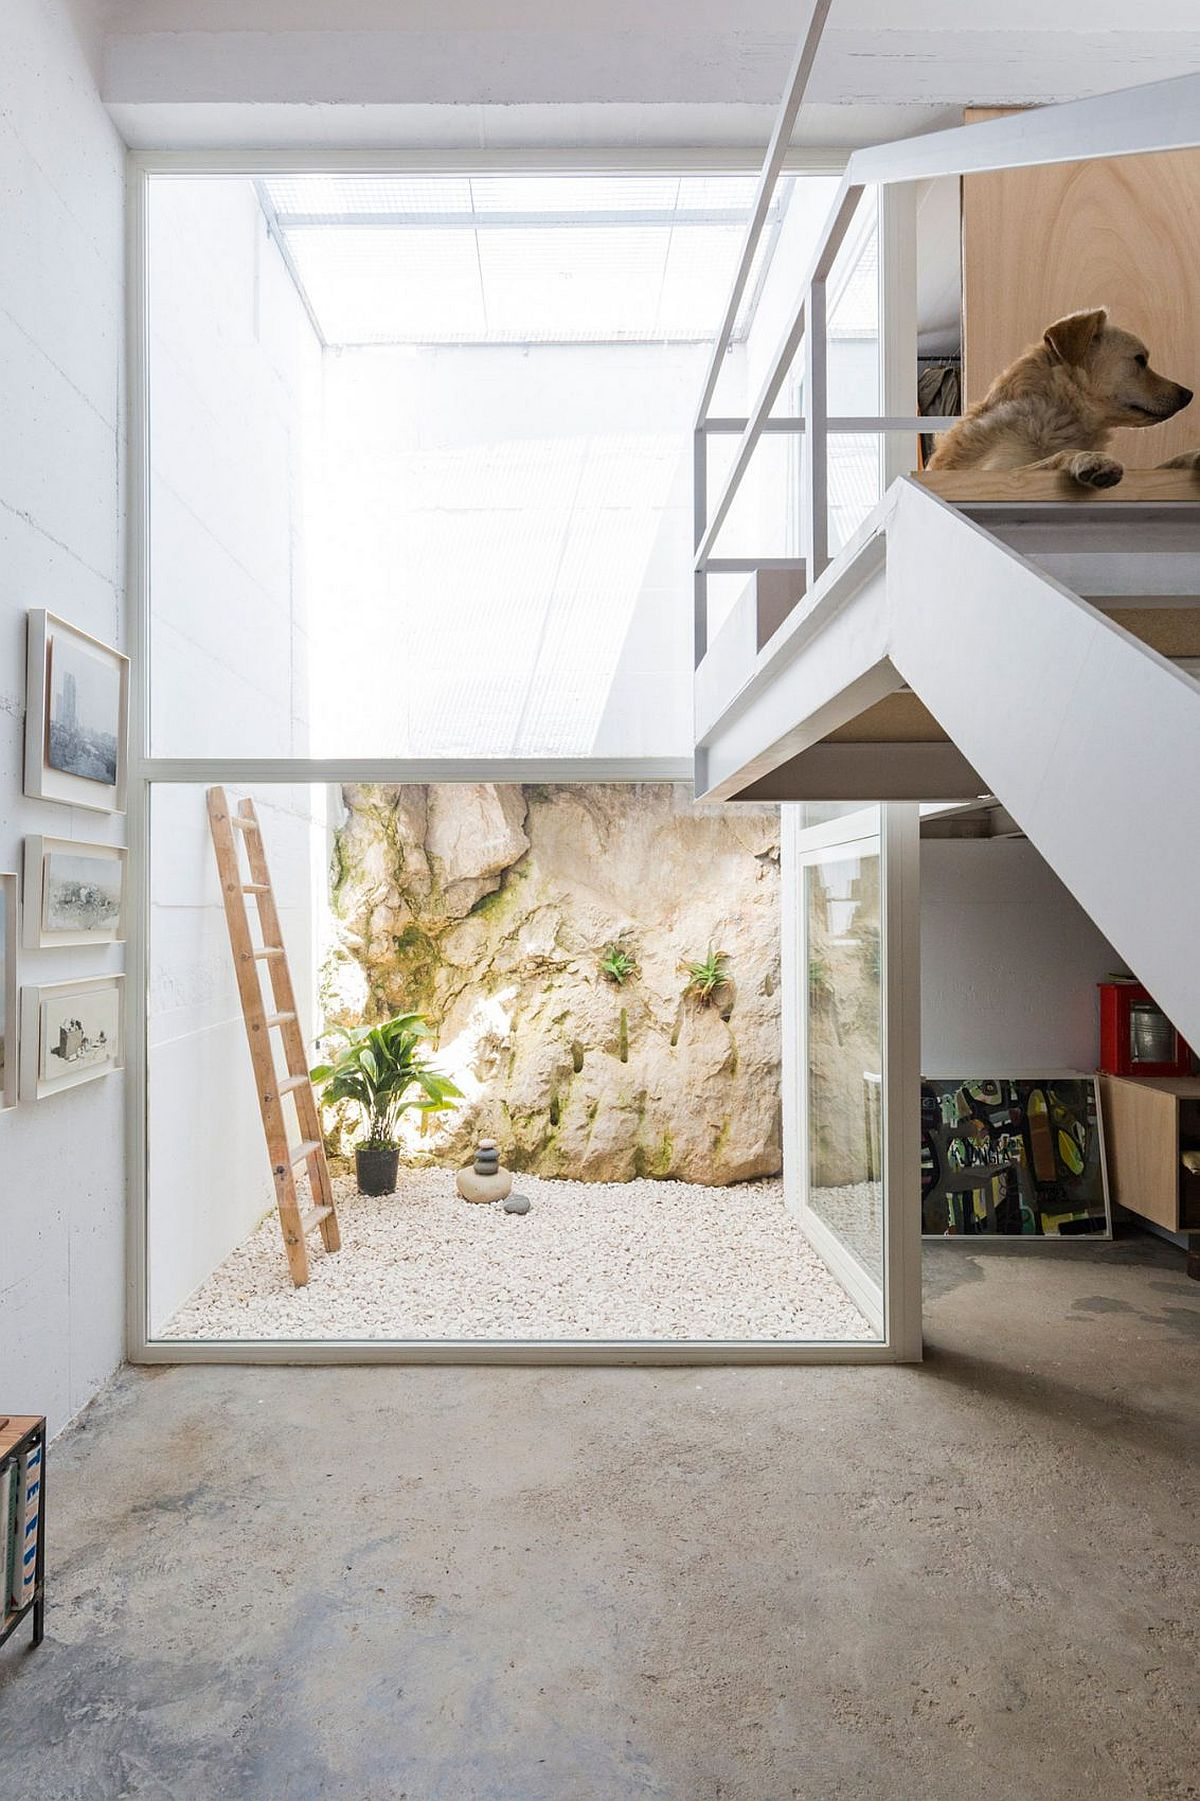 Small atrium brings light into the lower level of the Spanish house